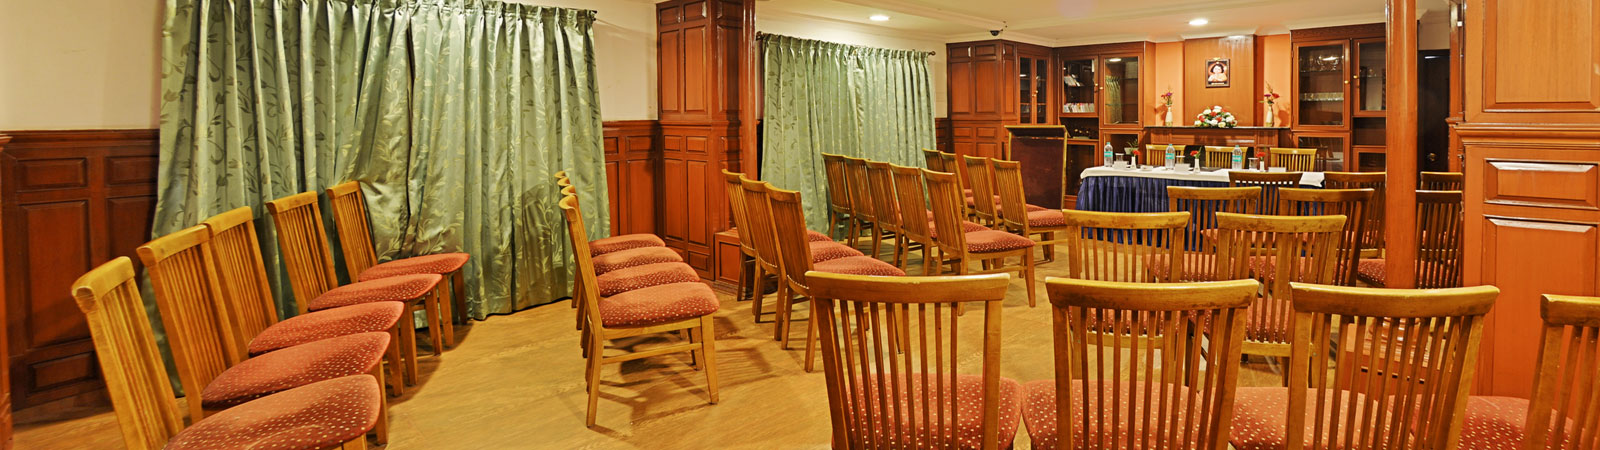 Hotels in ooty best hotels luxury hotel hotel - Best hotels in ooty with swimming pool ...